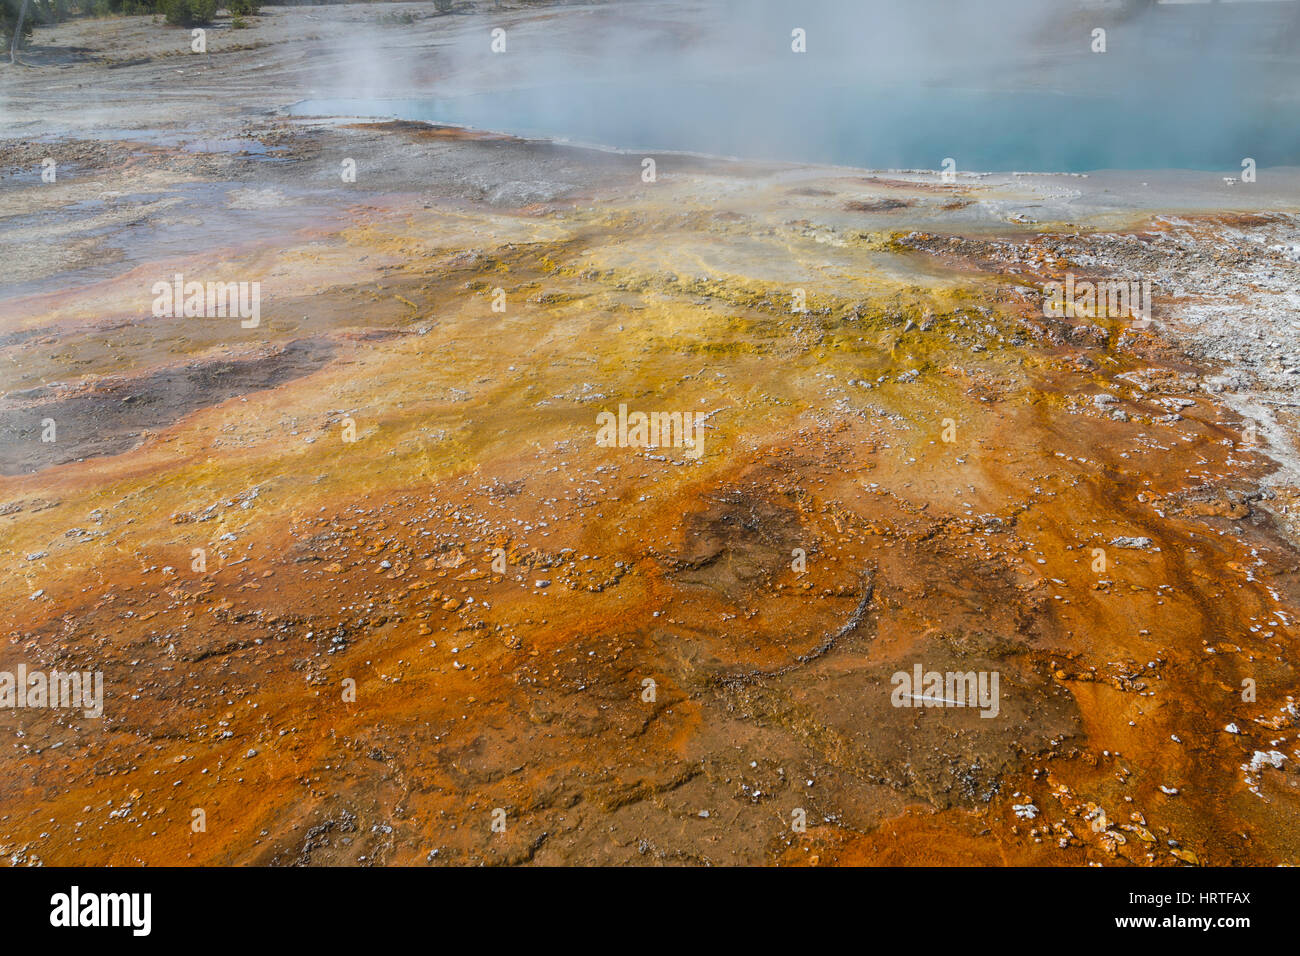 Black Pool thermal runoff in Yellowstone National Park, USA - Stock Image